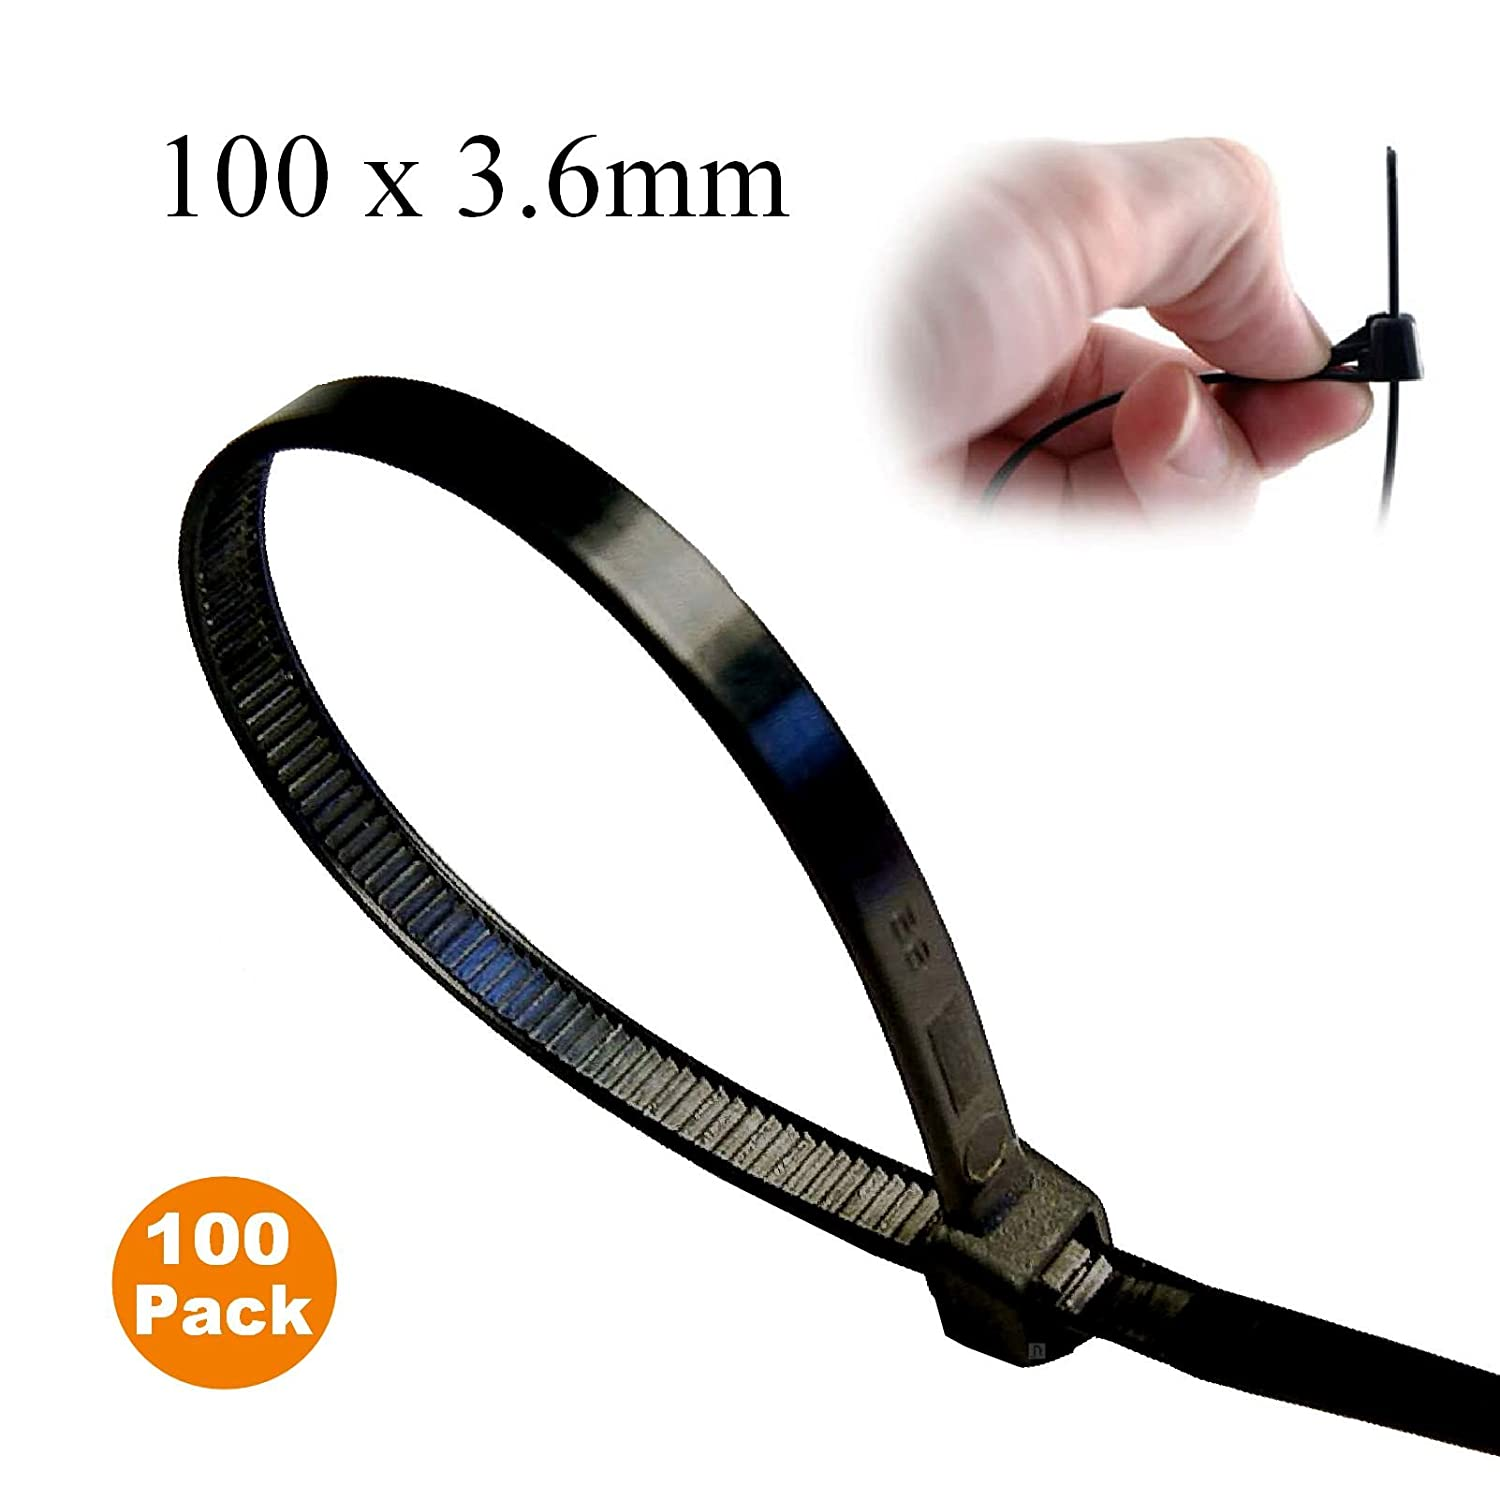 100 x Black Releasable Cable Ties 100mm x 3.6mm Reusable Wire Tidy Zip Wrap Straps Homesmart 4330226096